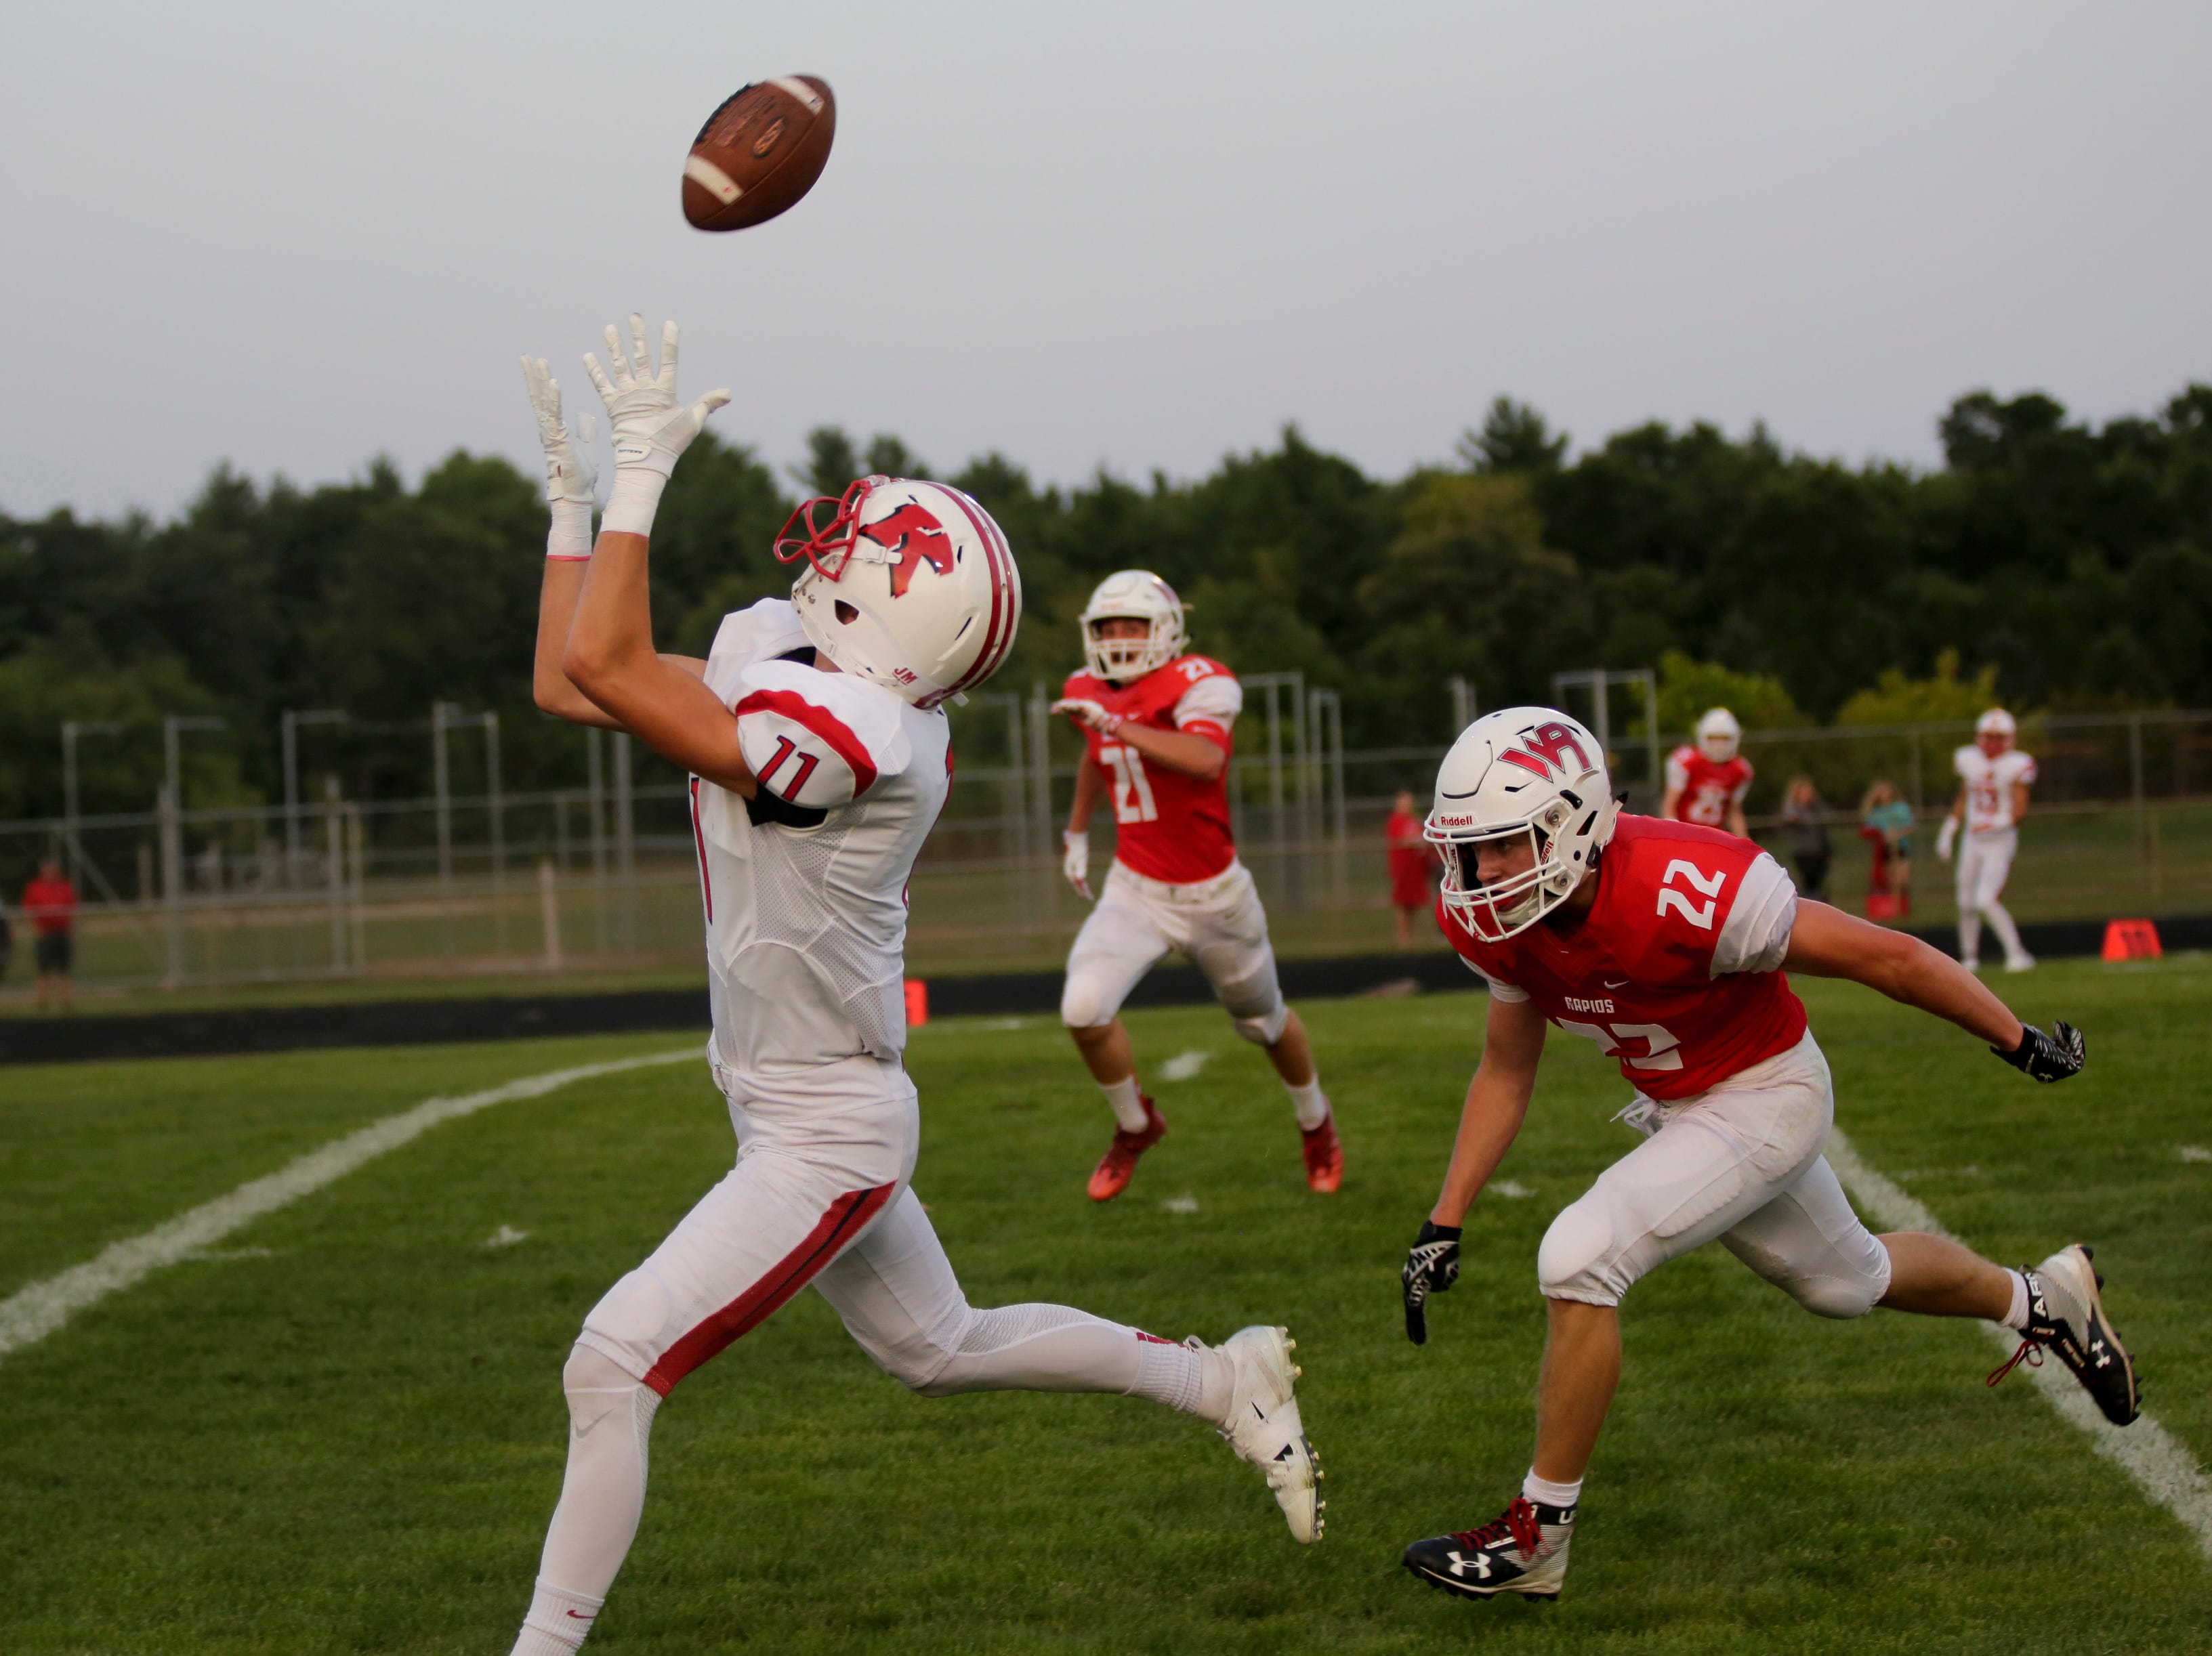 Kimberly's Conner Wnek (11) makes a catch to score a touchdown during a game between Wisconsin Rapids and Kimberly at Wisconsin Rapids Lincoln High School Thursday, August 23, 2018.